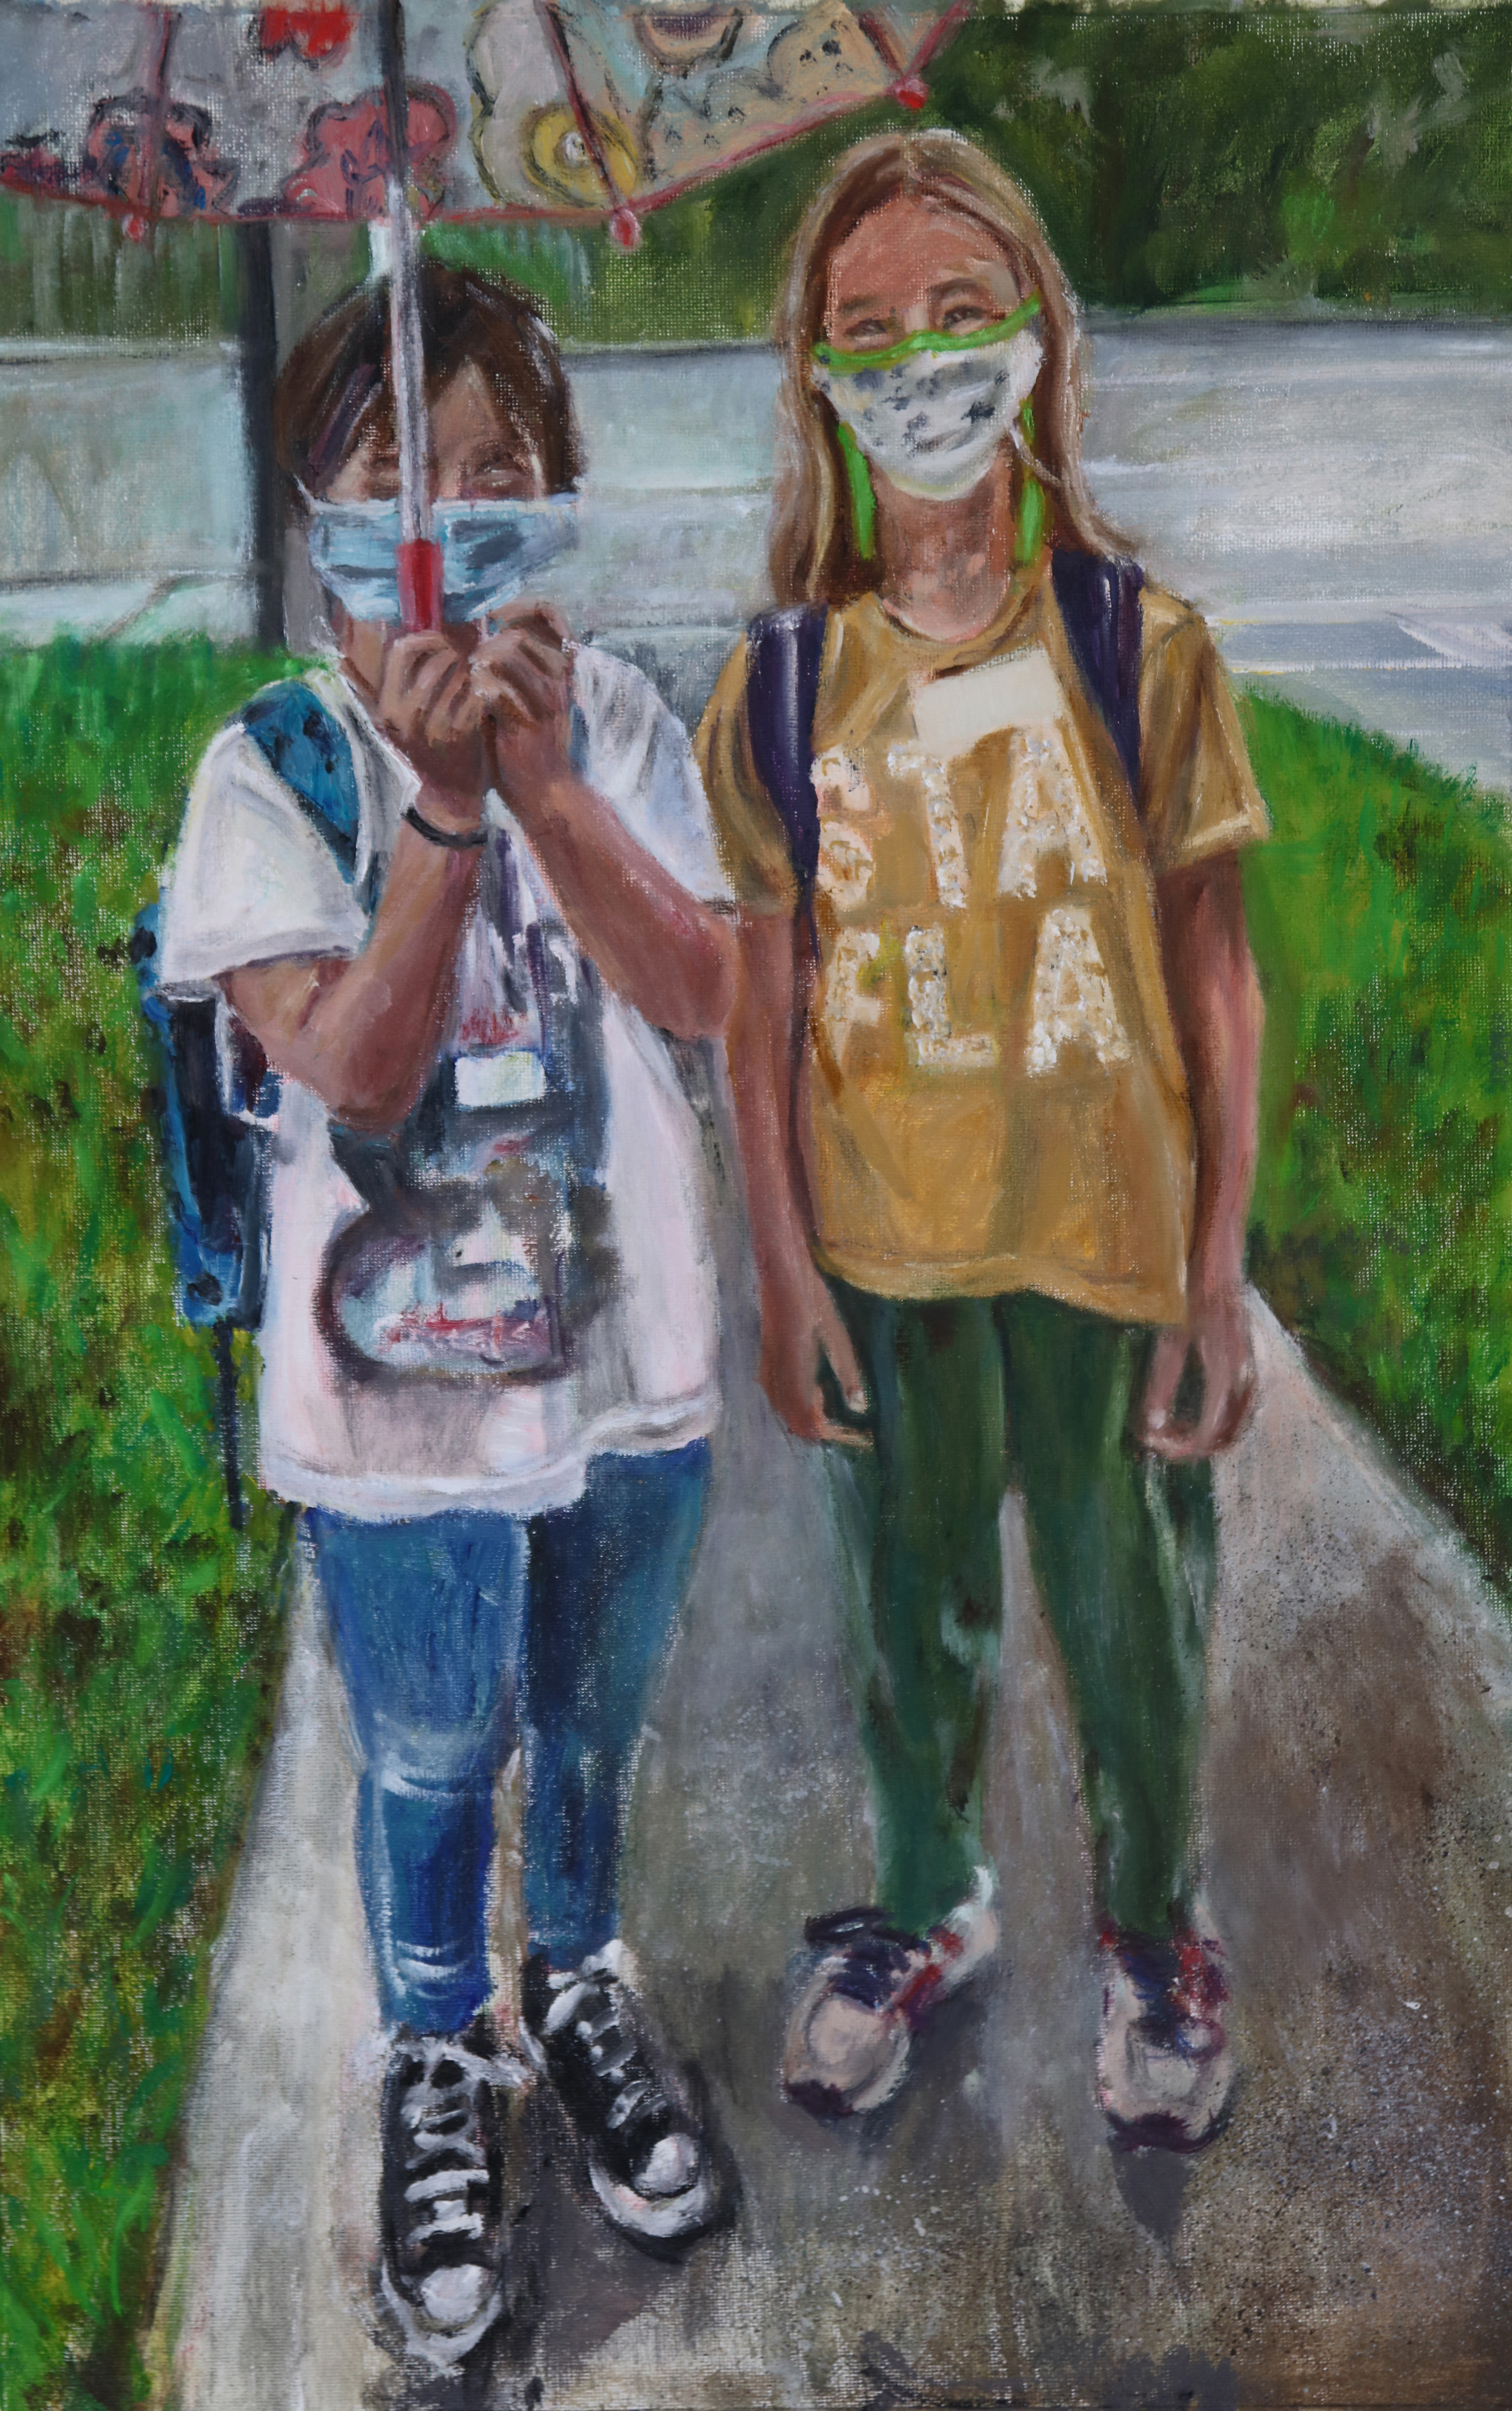 'Back to School', oil on canvas by Elaine Stecker ($350)